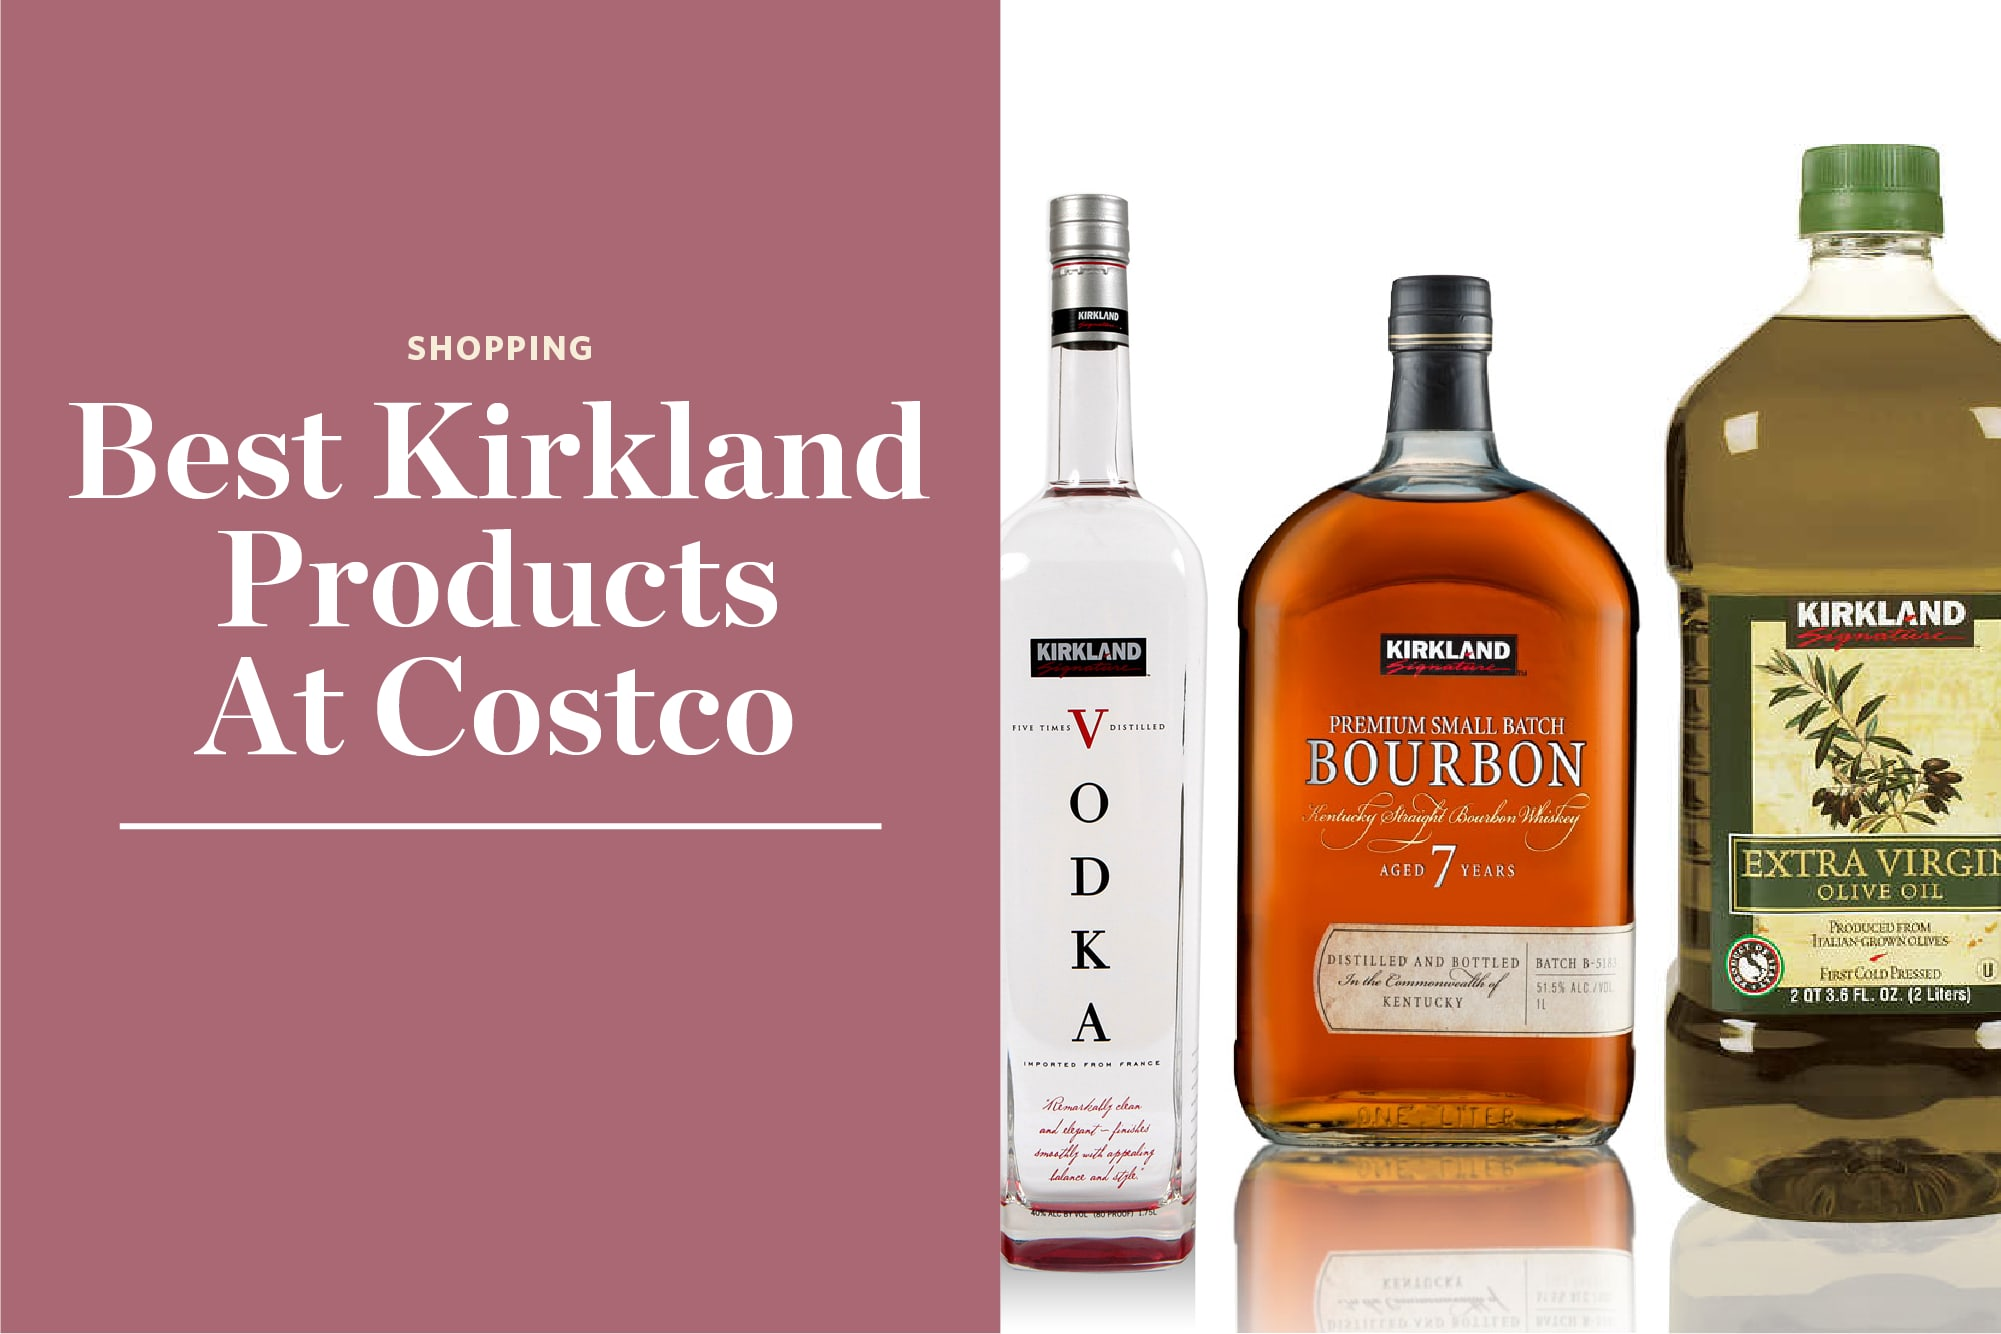 The 13 Best Kirkland Signature Products at Costco